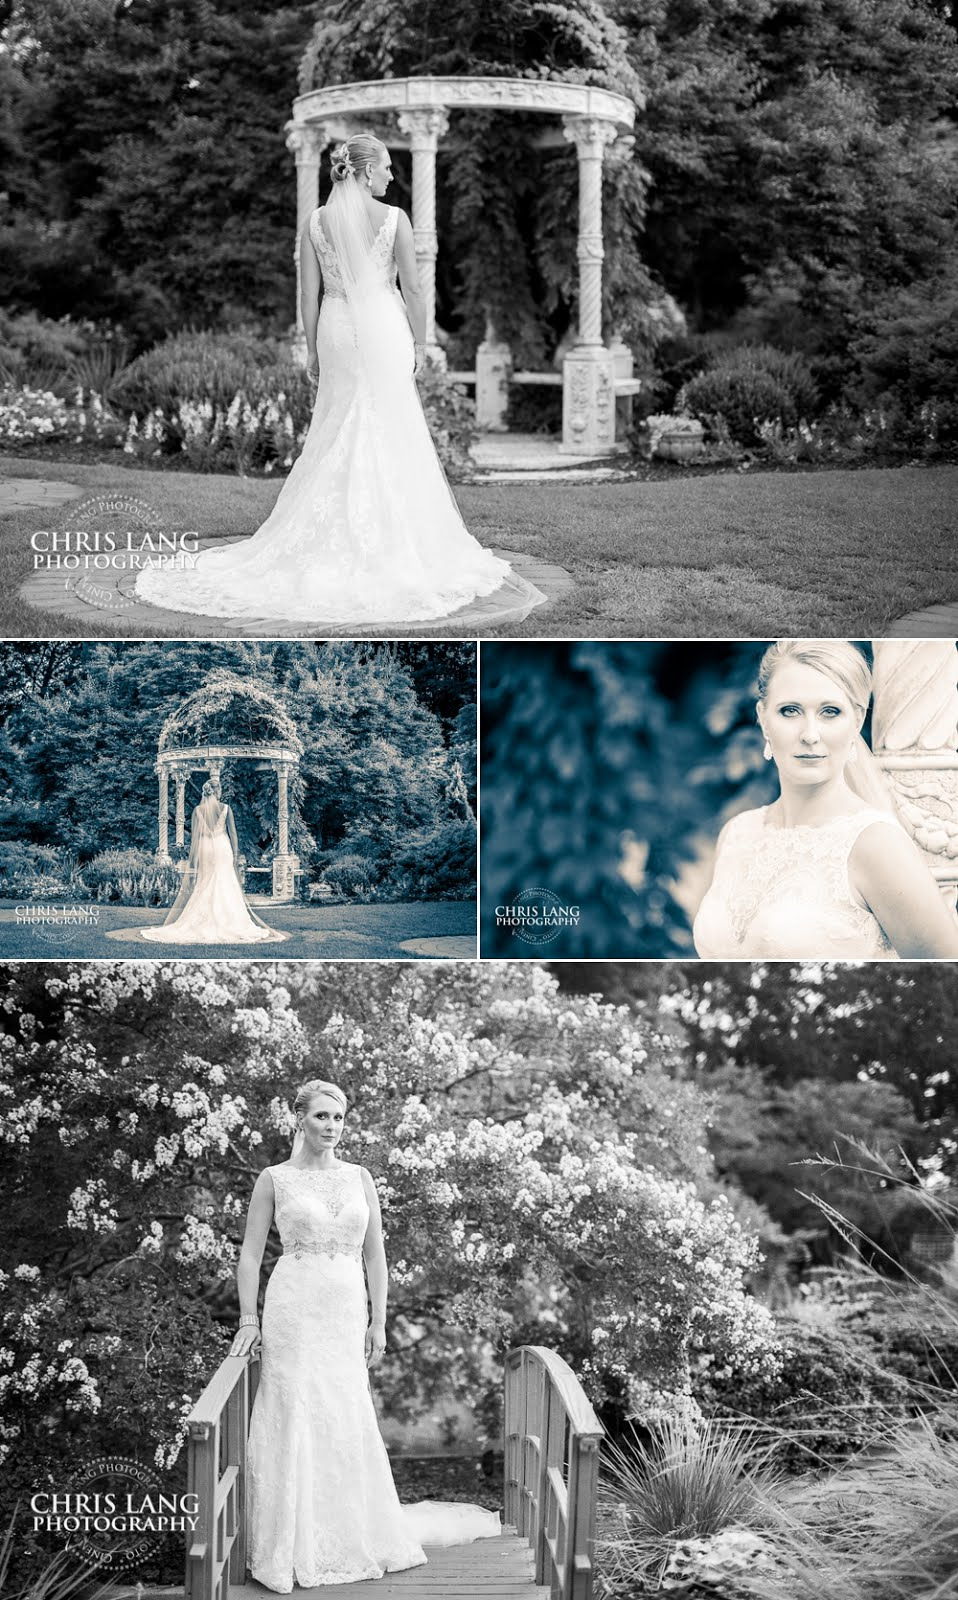 Bridal Pictures - Arboretum - Wilmington NC - Bridal Ideas - Chris Lang Photography